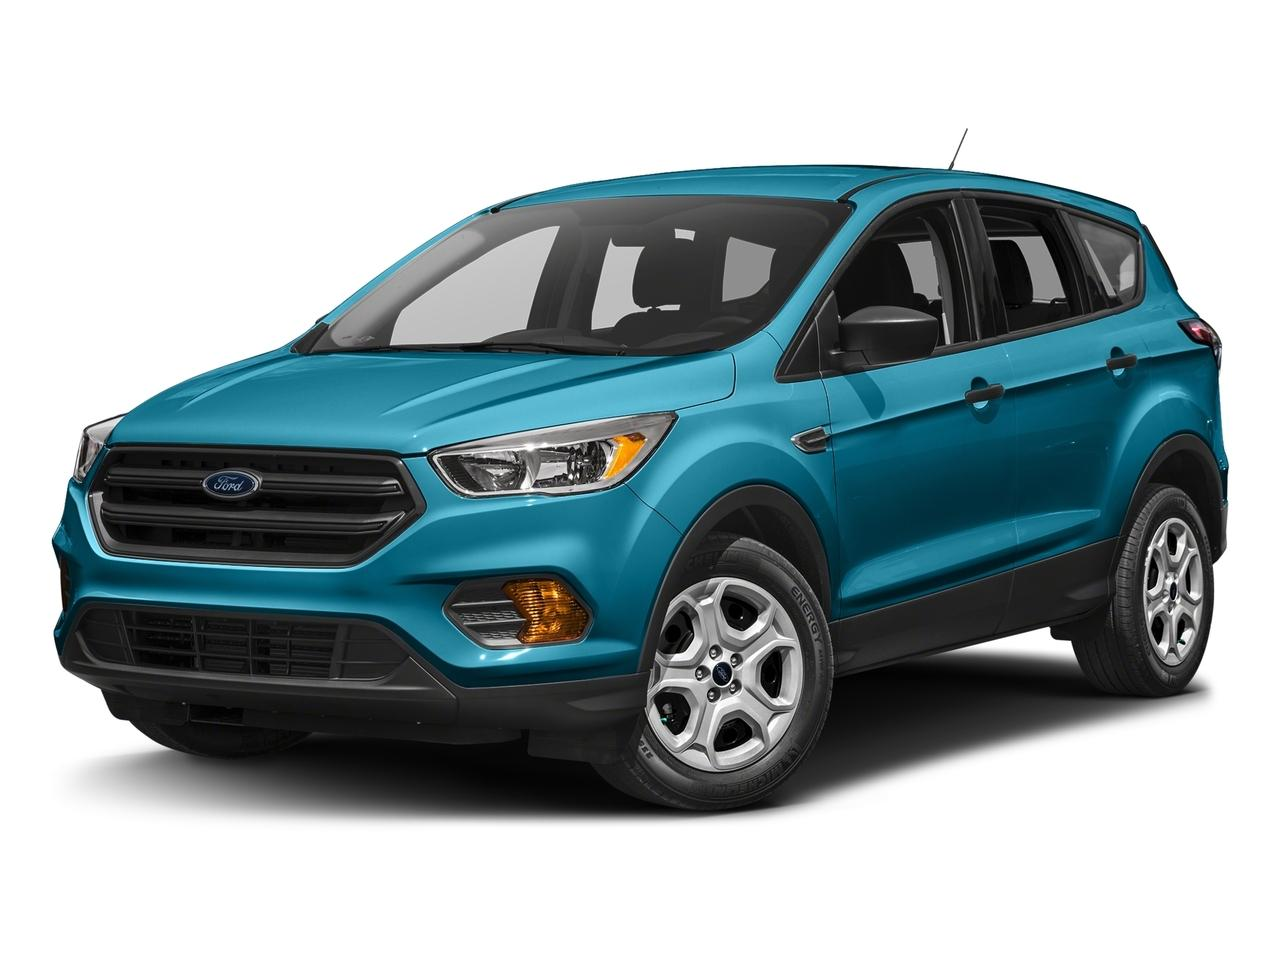 Used 2017 Ford Escape SE with VIN 1FMCU9G9XHUC96476 for sale in Worthington, Minnesota